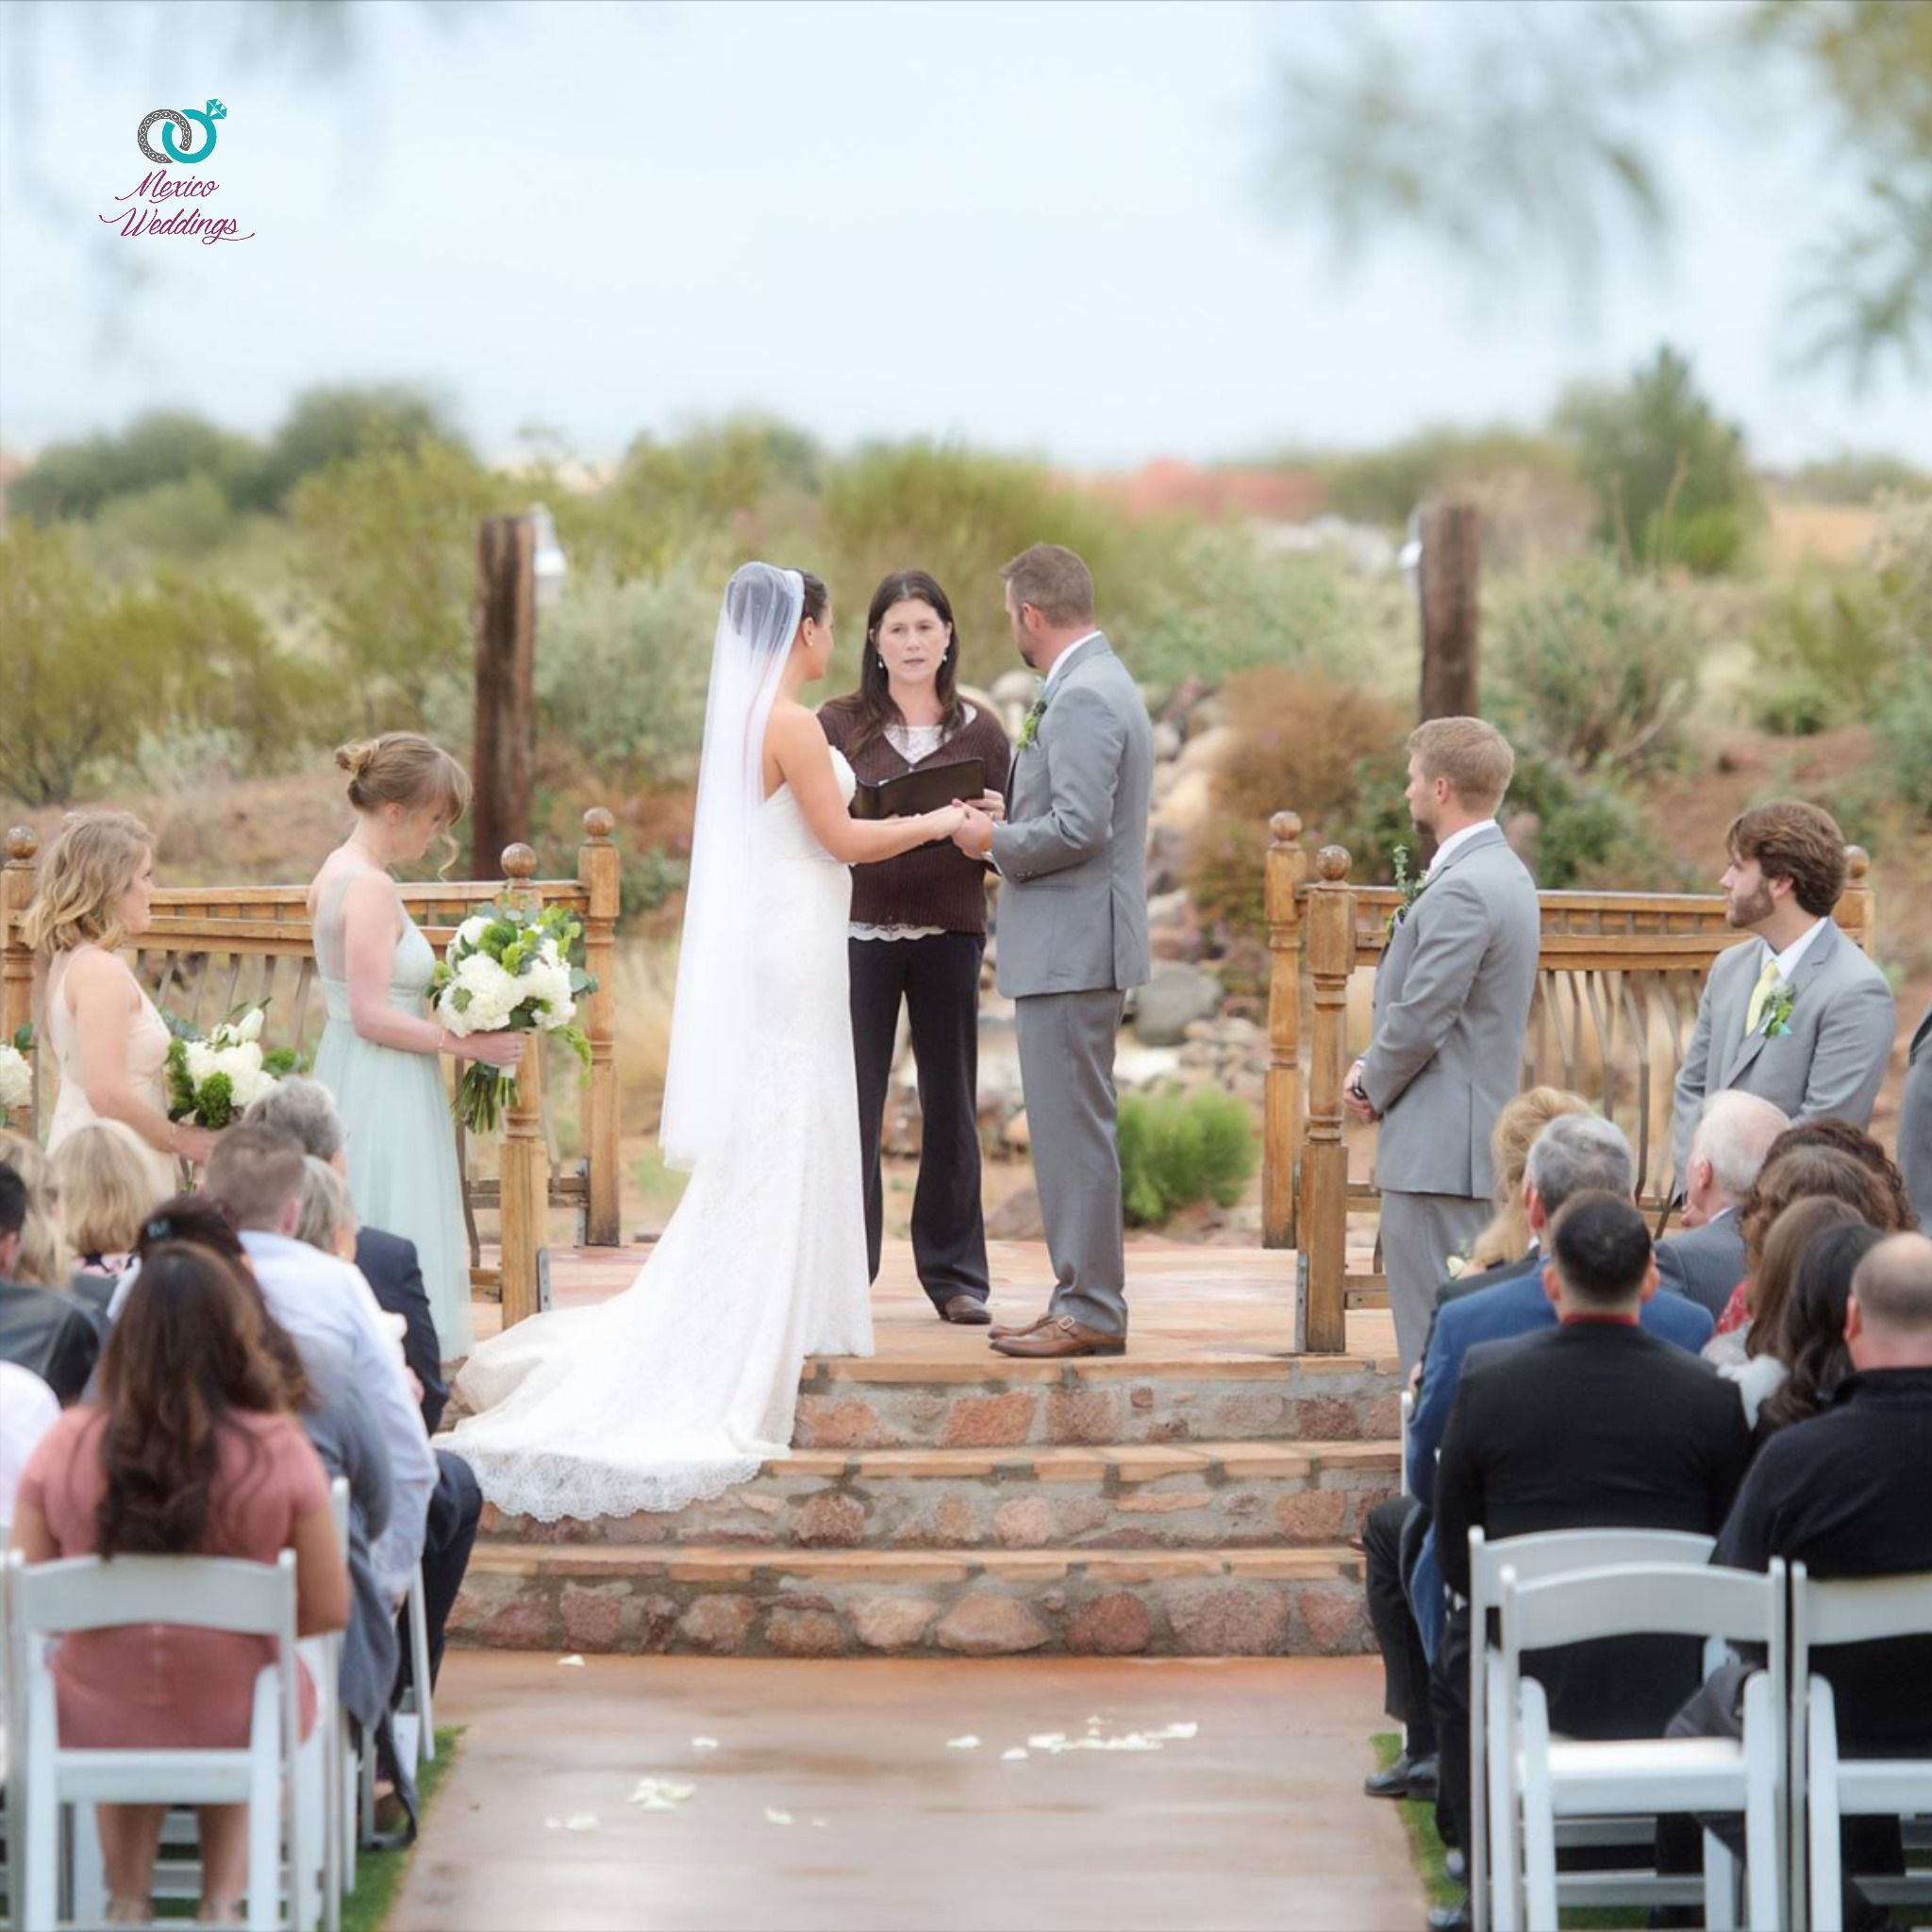 Wedding Officiants Wendy The Officiant In 2020 Wedding Officiant Officiants Mexico Wedding